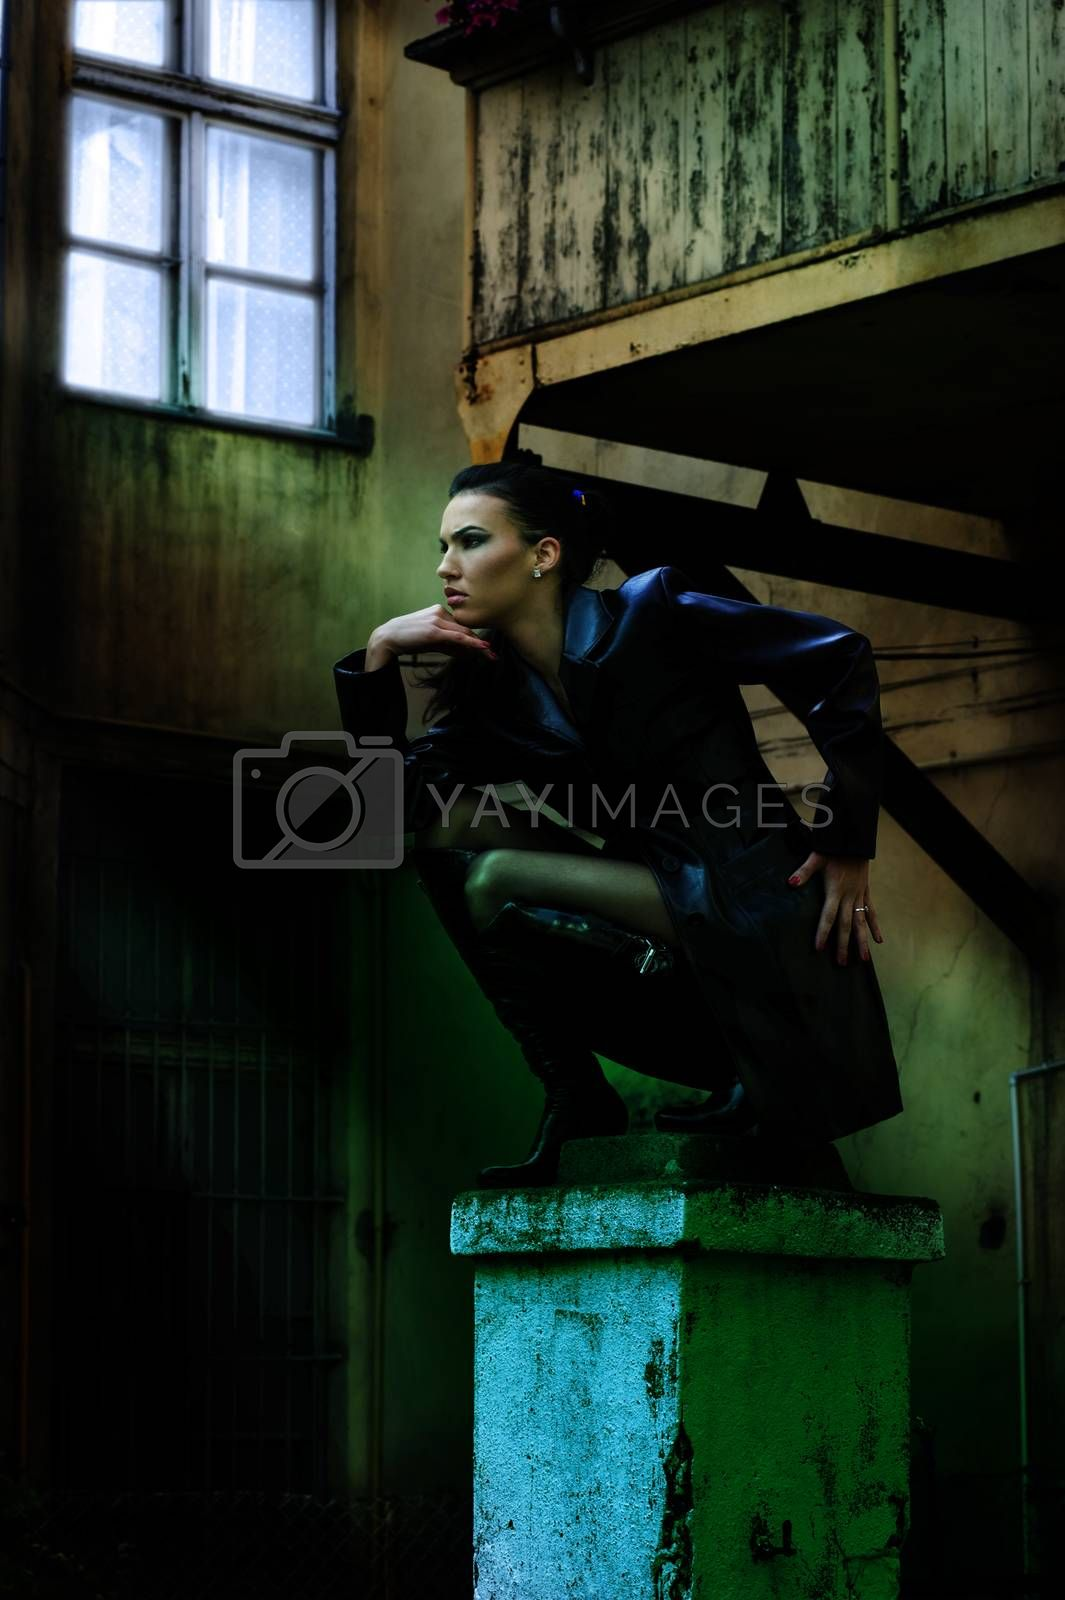 Royalty free image of the vampire by fotoCD